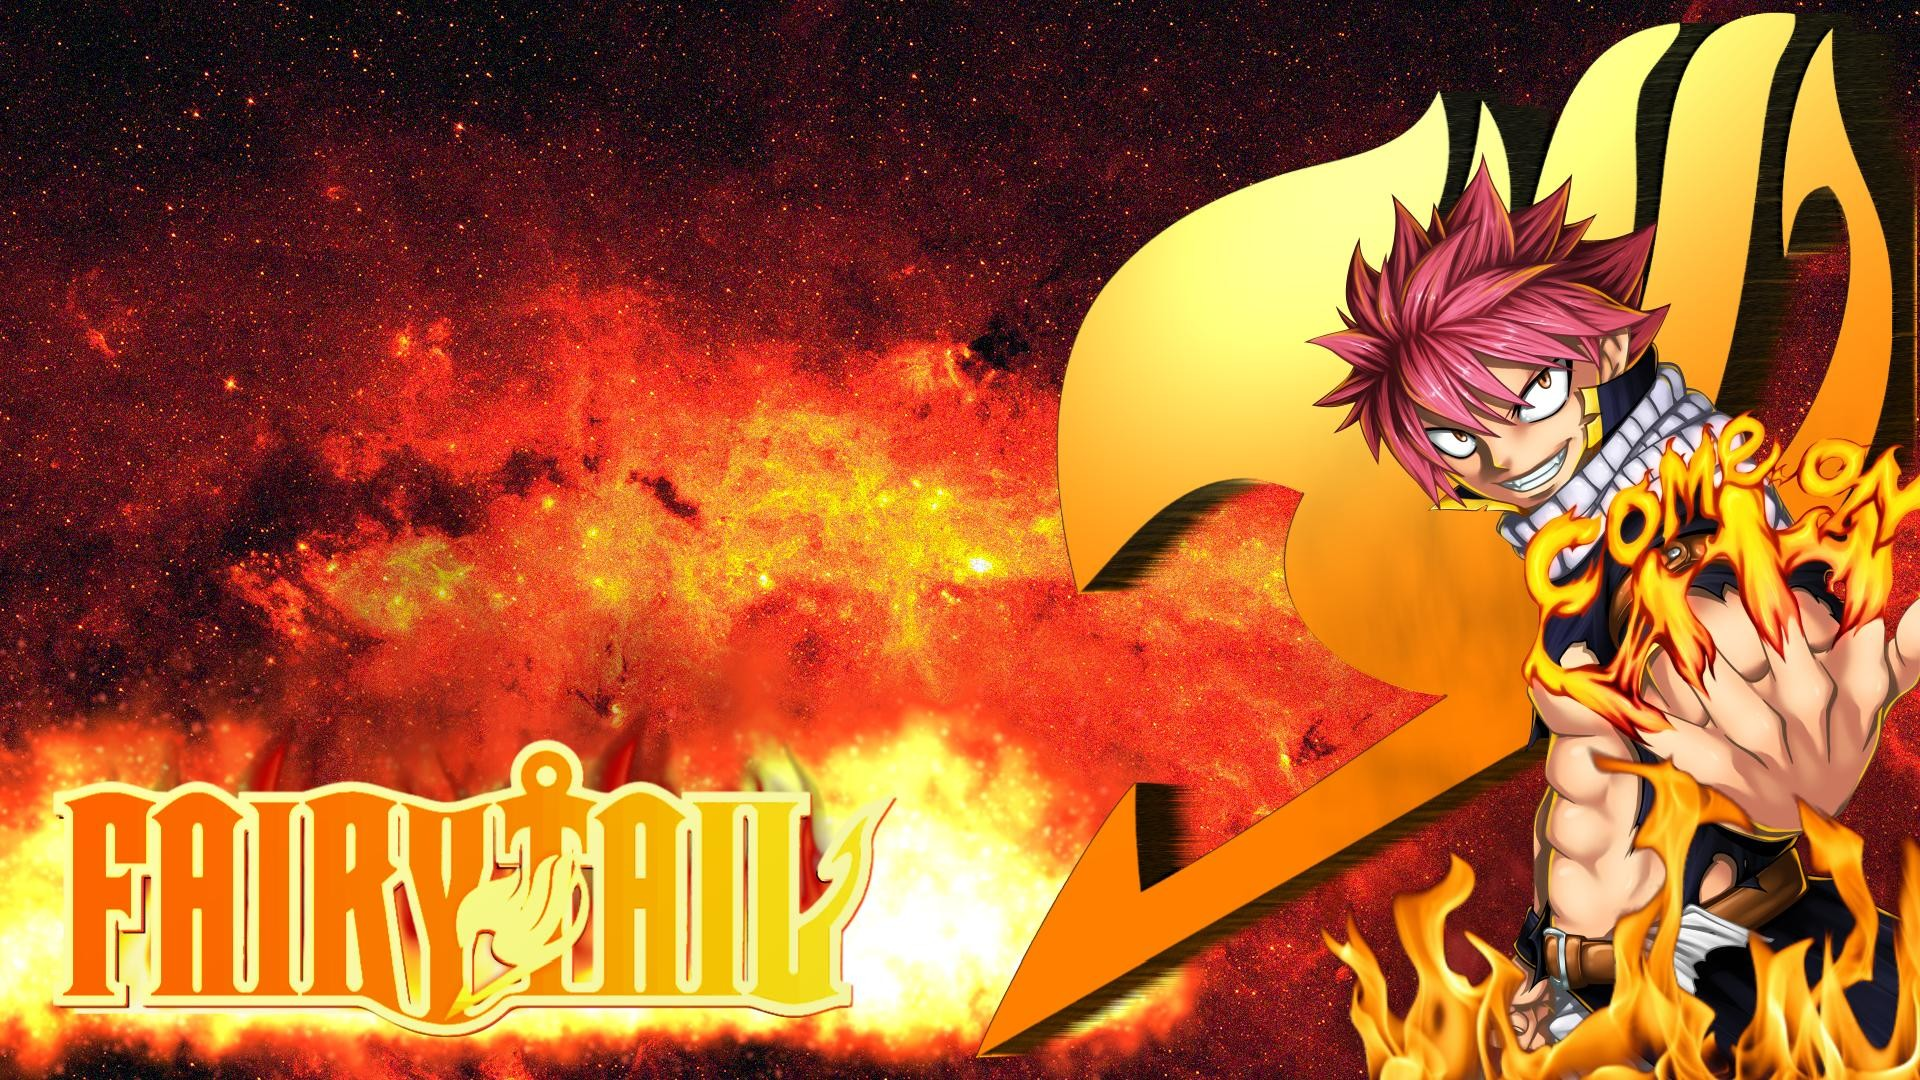 Fairy Tail Natsu Wallpapers High Resolution 1920x1200